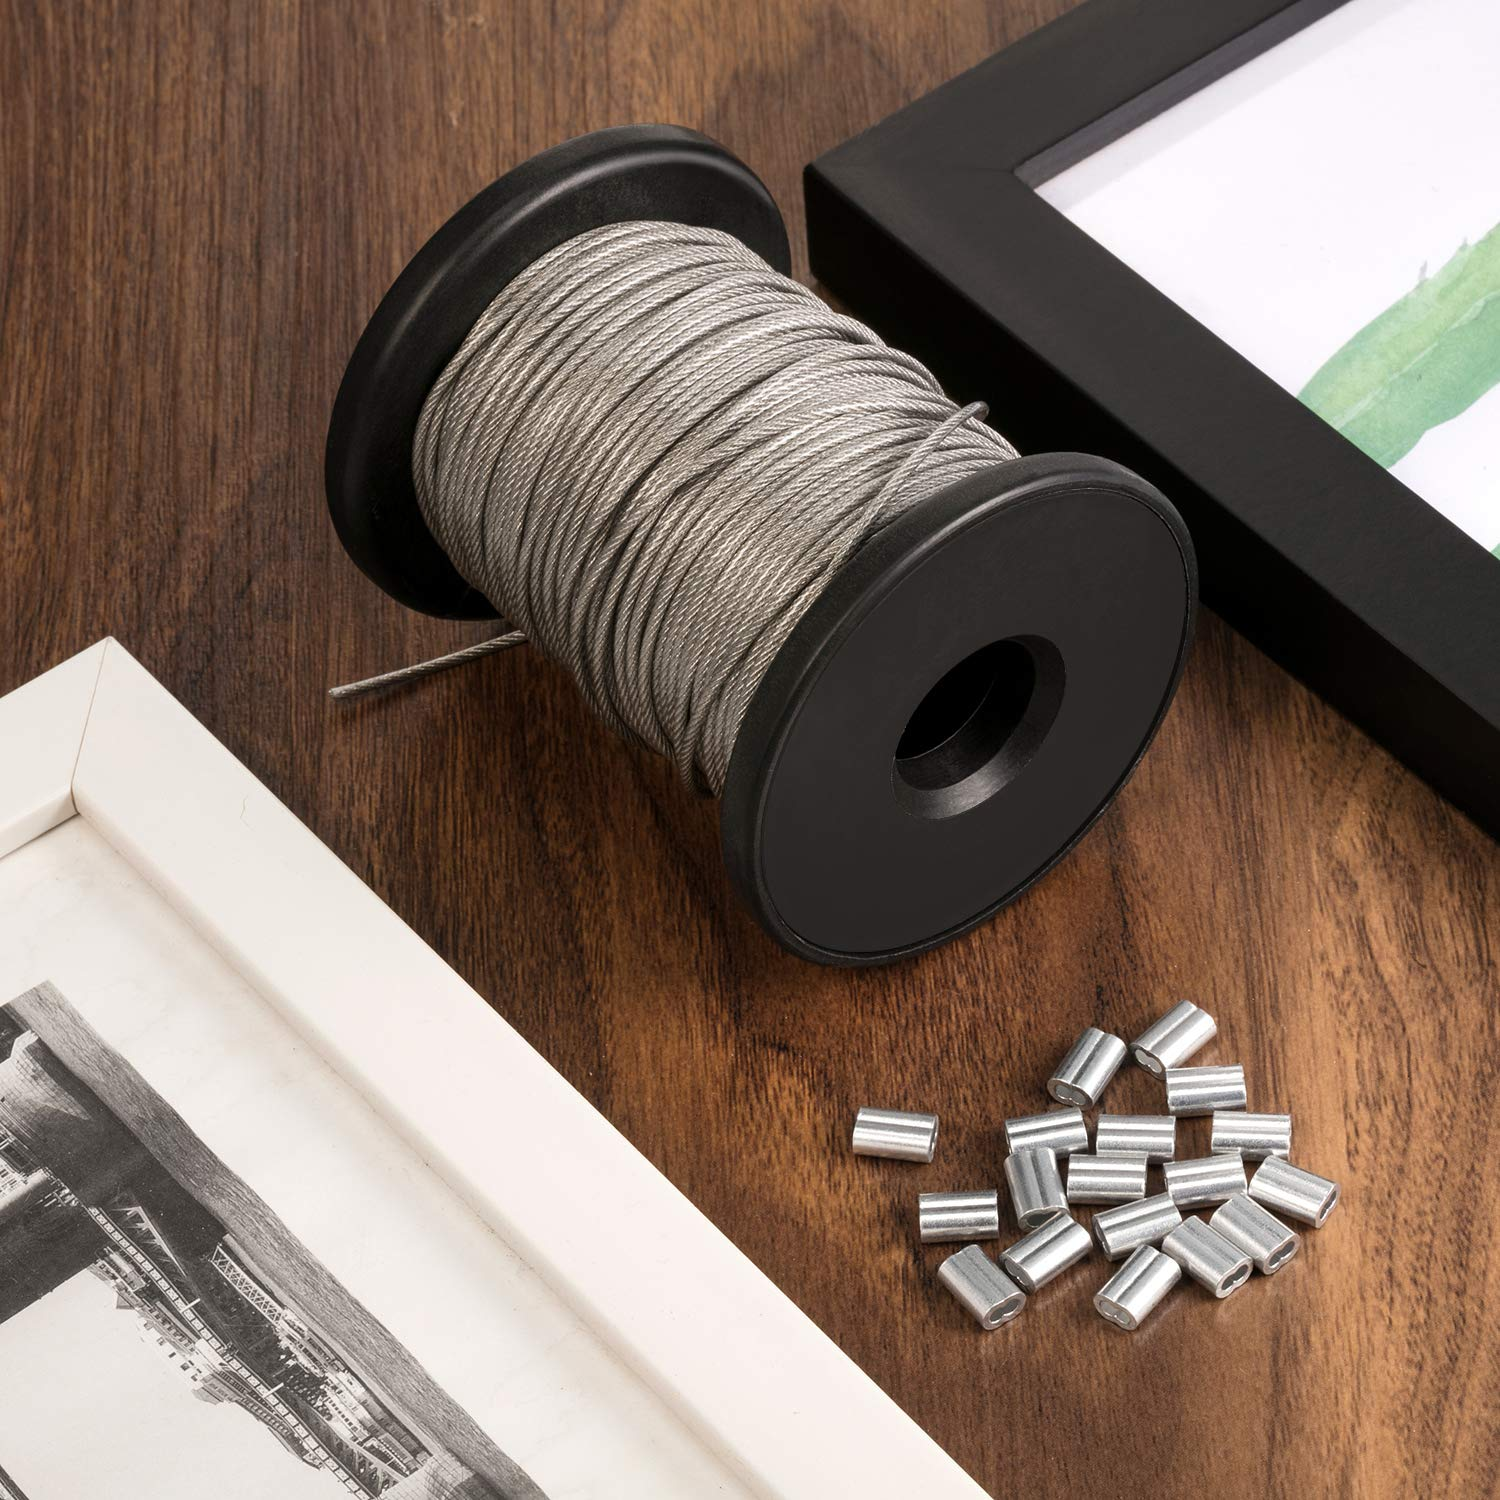 Chengu Vinyl Coated Picture Frame Hanging Wire, Stainless Steel Wire Spool with 20 Pieces Aluminum Crimping Loop Sleeve, Supports up to 110 Lbs (1.5 mm x 98 Feet) by Chengu (Image #4)